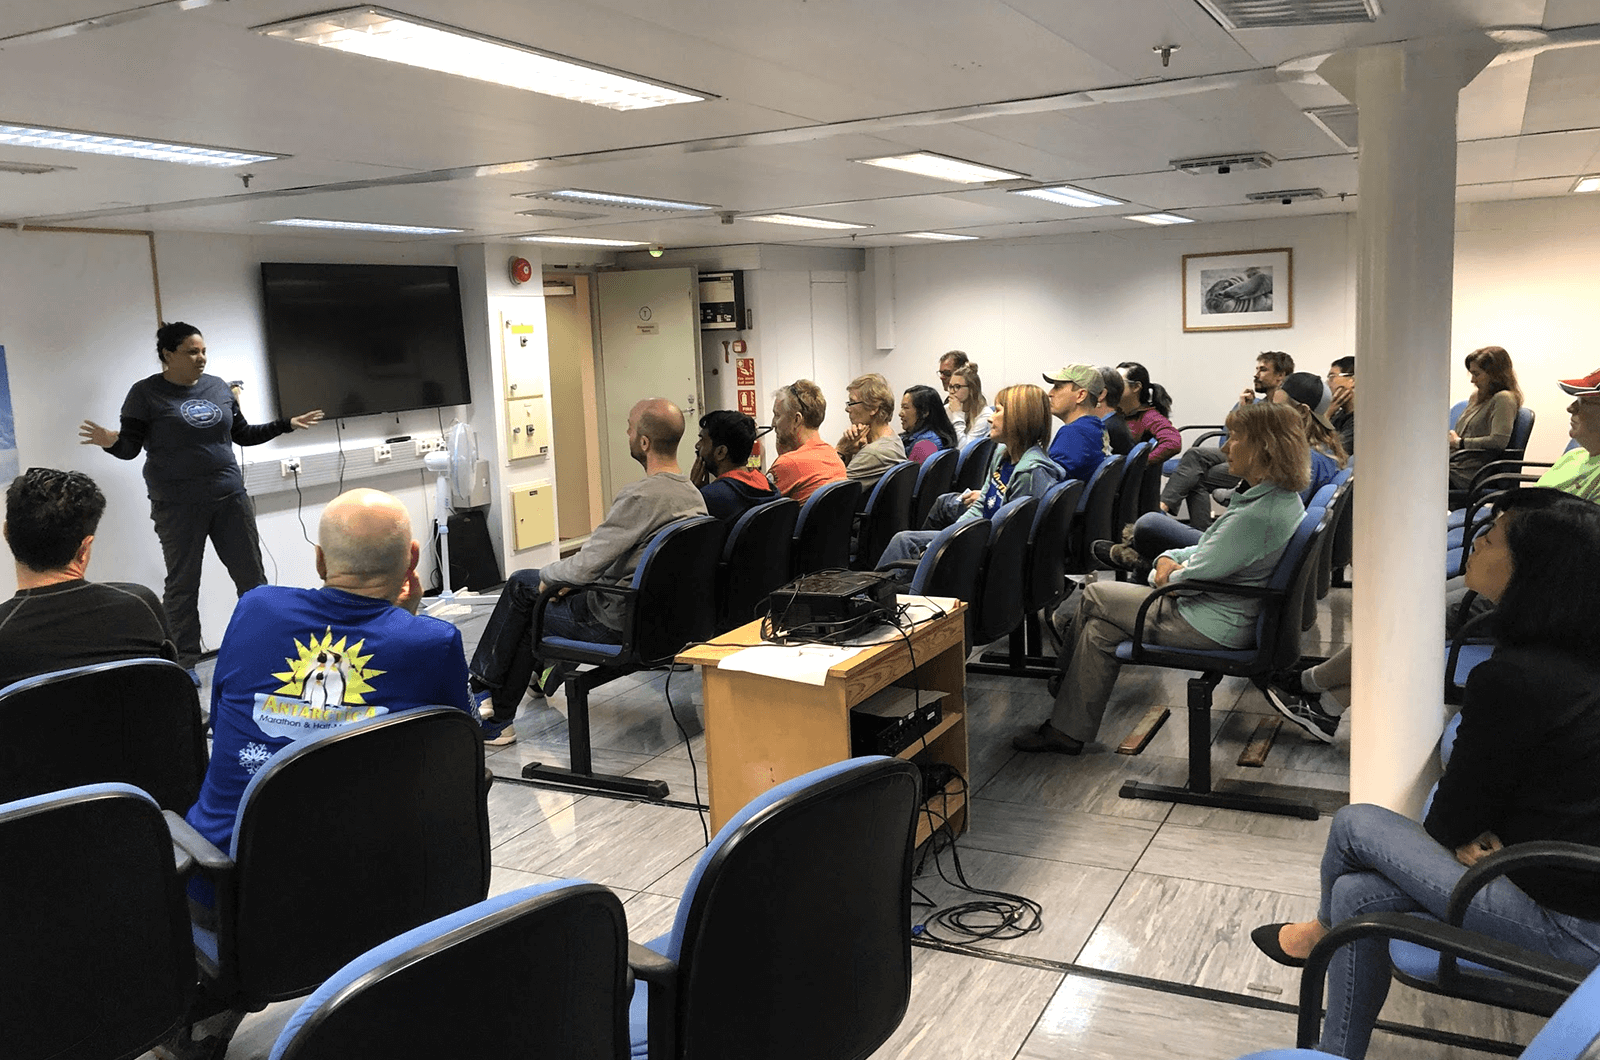 While traveling on a ship to Antarctica, Satish Shenoy set up a Toastmasters demo meeting for his shipmates, who were traveling together to run a marathon.